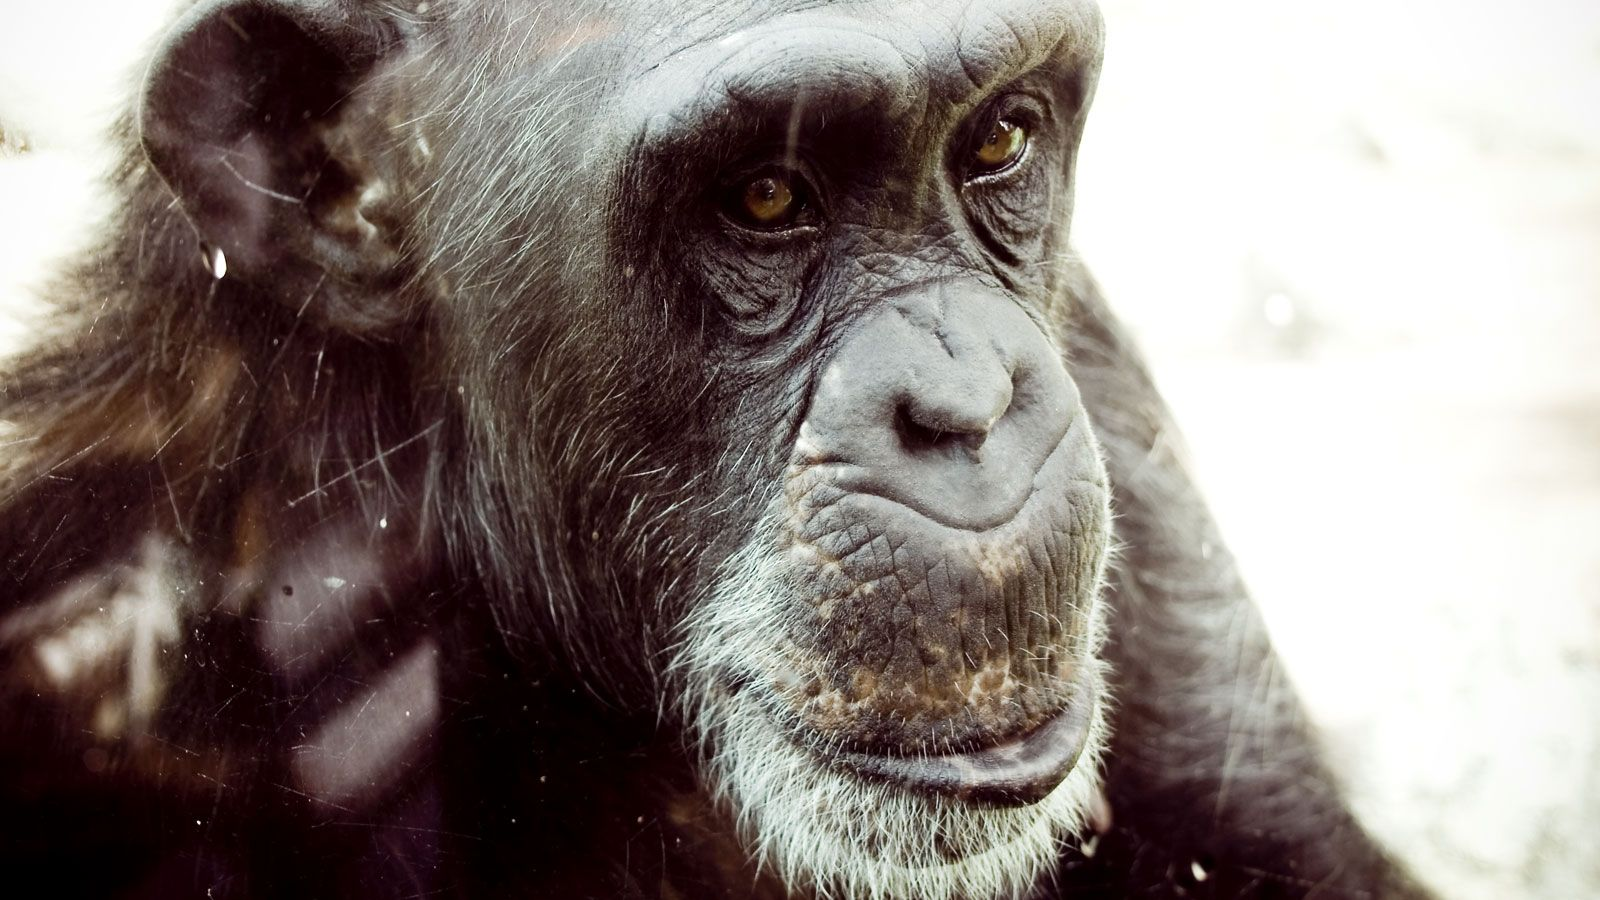 Wild and Captive Chimpanzees to Get Strongest Protections